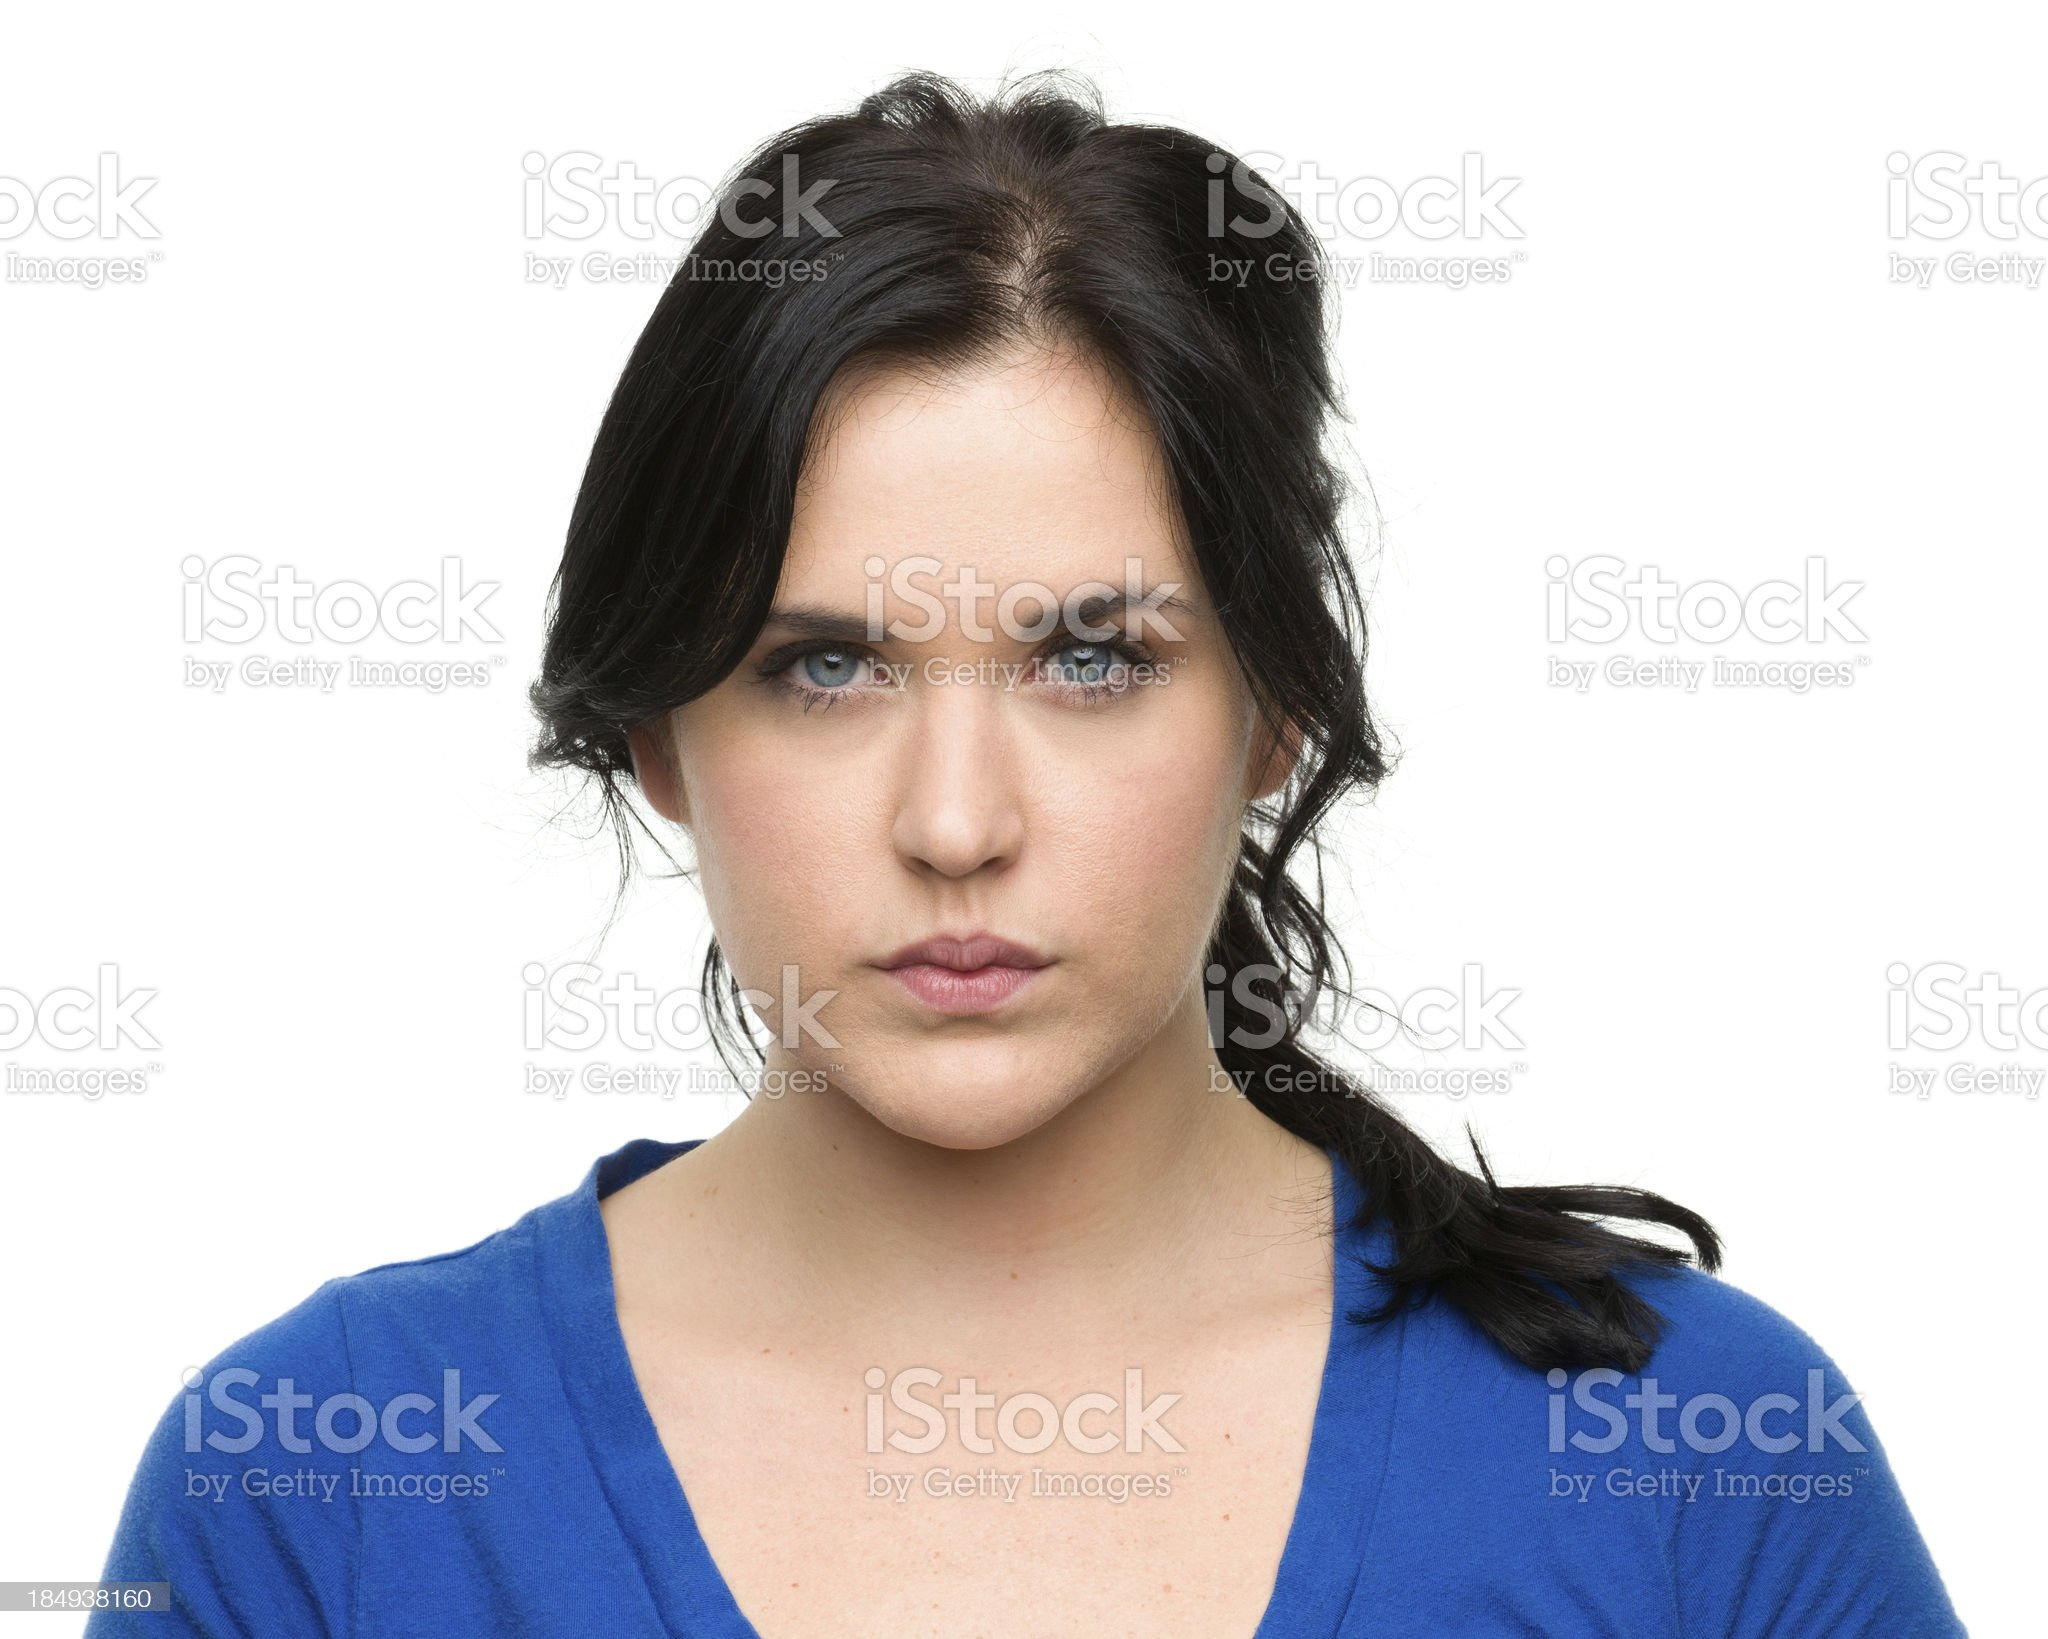 Serious Young Woman Headshot royalty-free stock photo